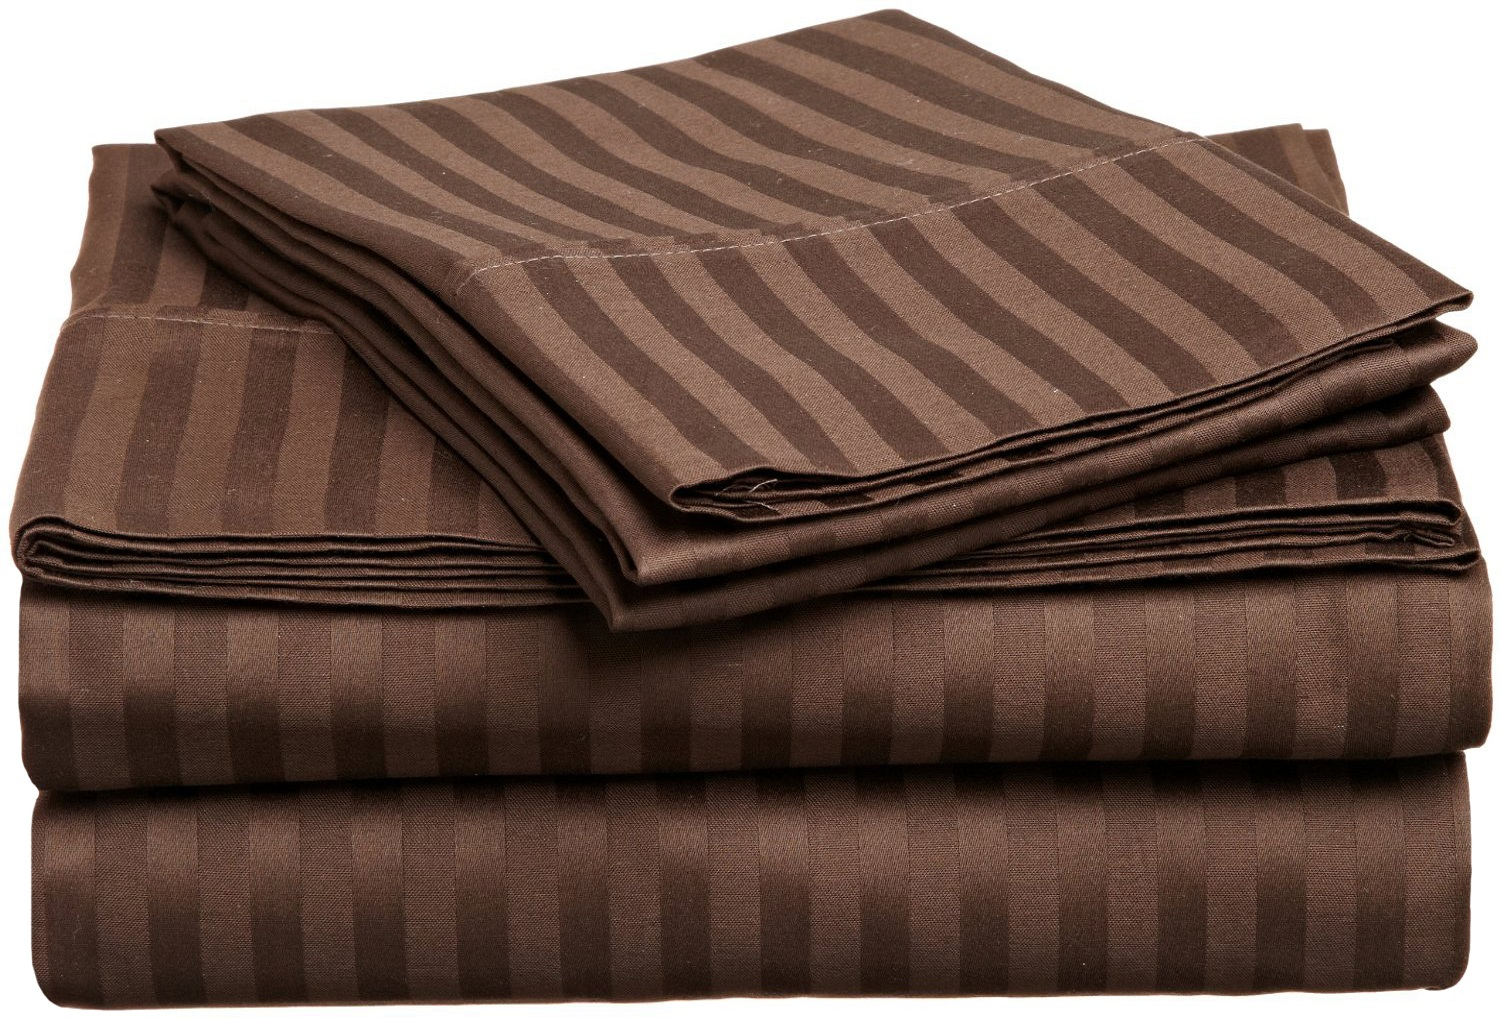 As of our best pick Mellanni Collection Microfiber Fitted Sheet -Wrinkle, Fade, Stain Resistant is a fine place to start, it renders most of the queen sheets features with an exciting price only at jomp16.tk